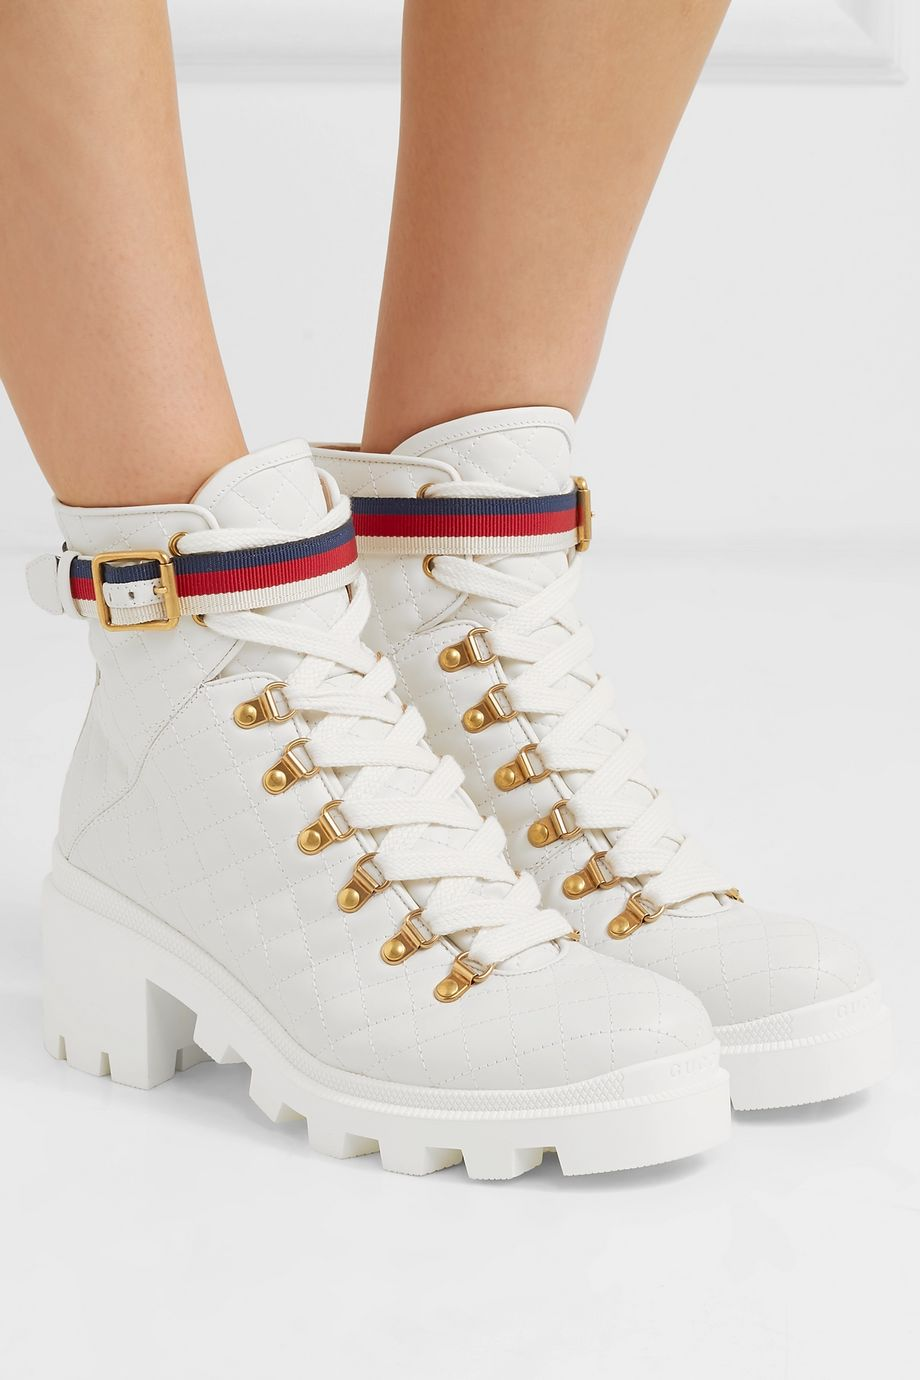 Gucci Grosgrain-trimmed quilted leather ankle boots